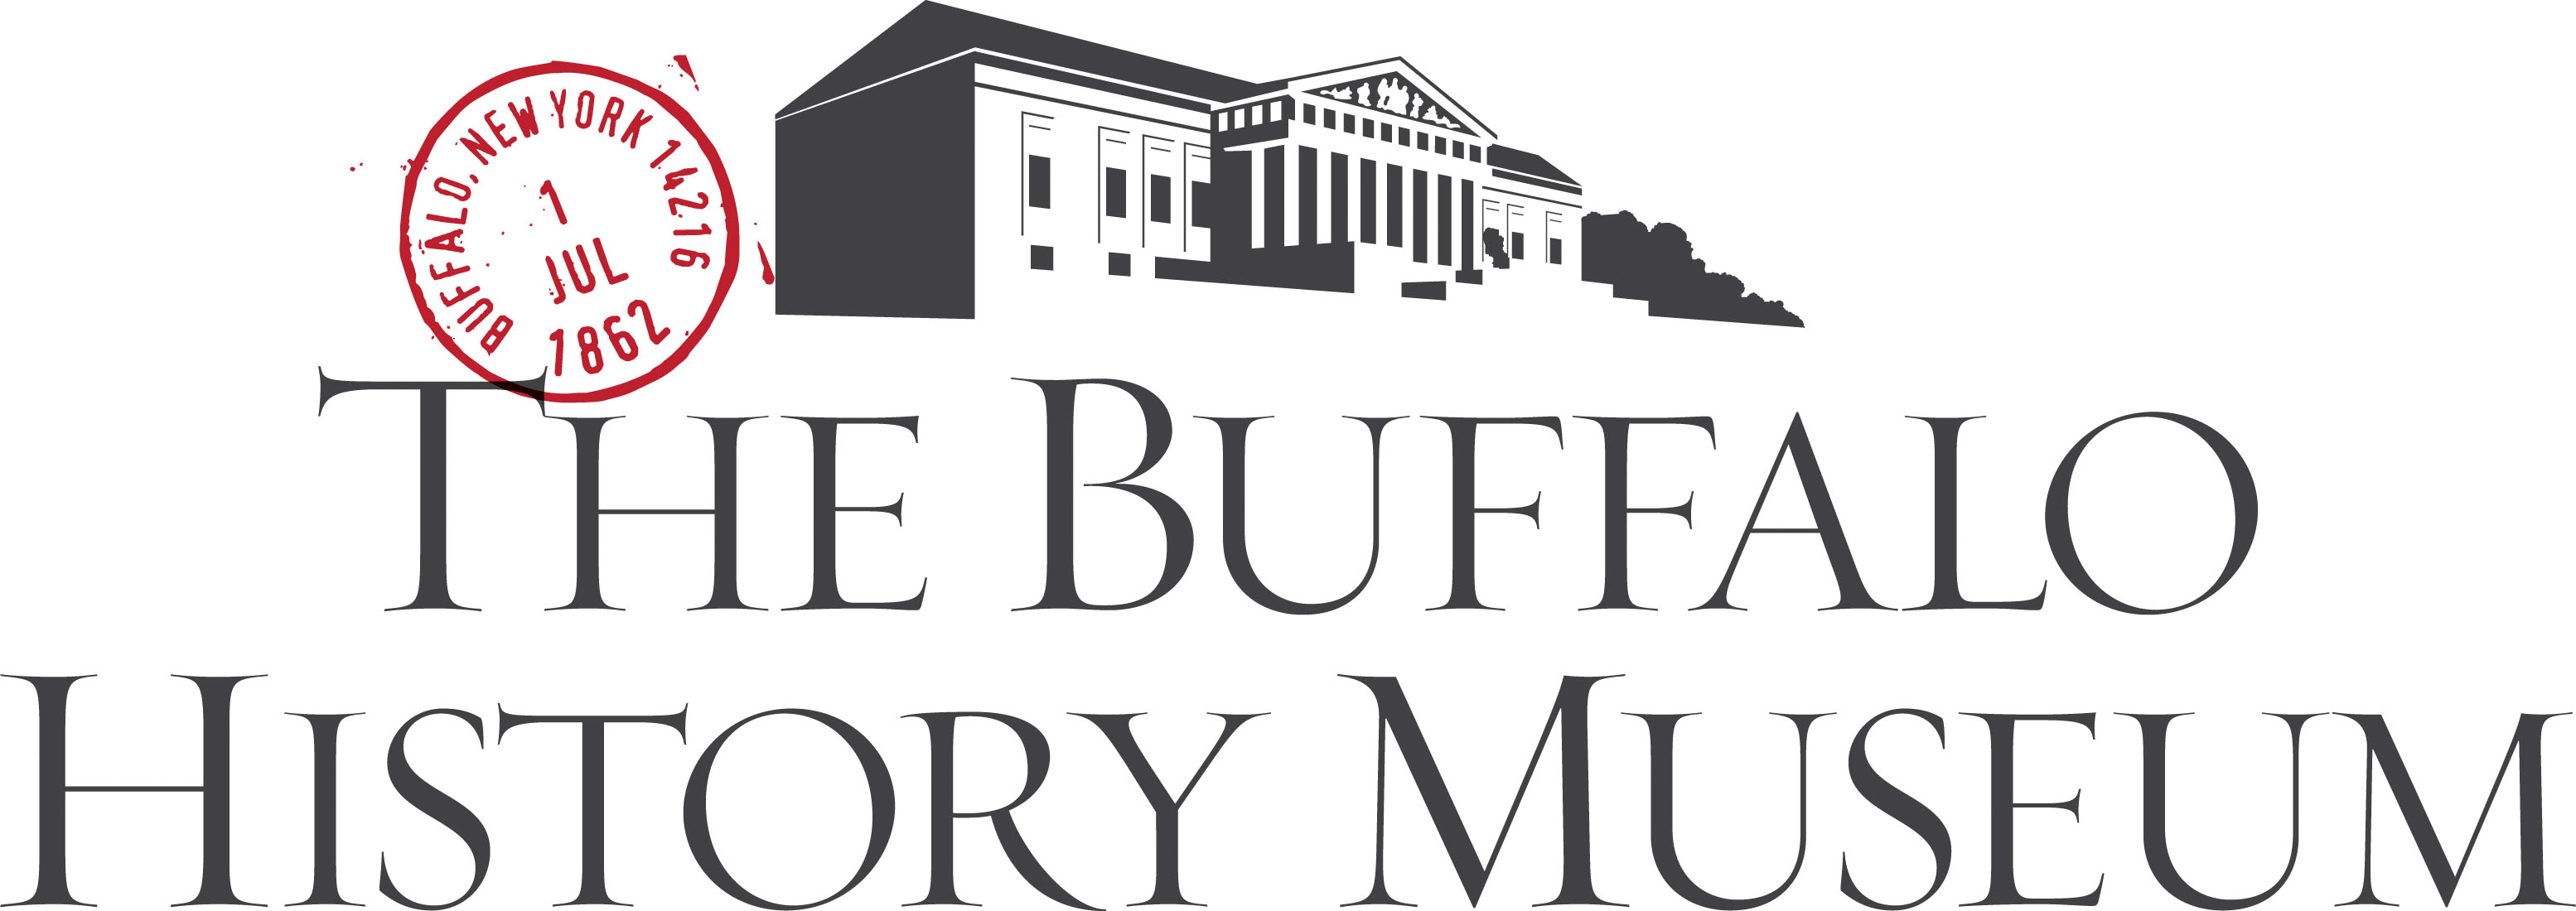 """An outline image of a long building with columns at the front sits above larger words that read """"The Buffalo History Museum."""" A circular postage stamp, which reads """"Buffalo, New York 14216, 1, Jul, 1862"""" is in the left hand corner of the logo."""